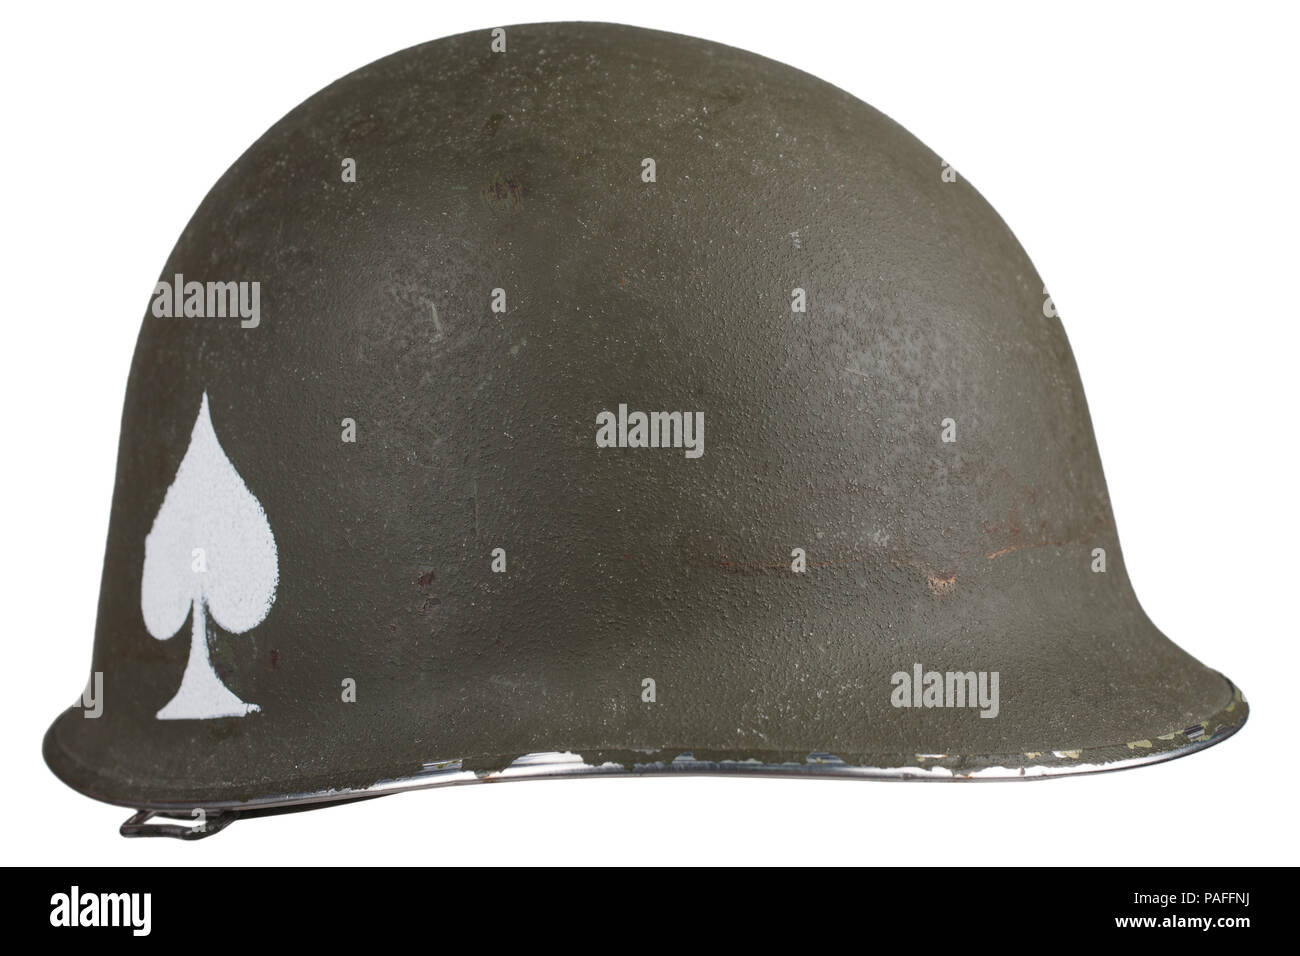 ww2 us army helmet with ace of spades emblem isolated Stock Photo